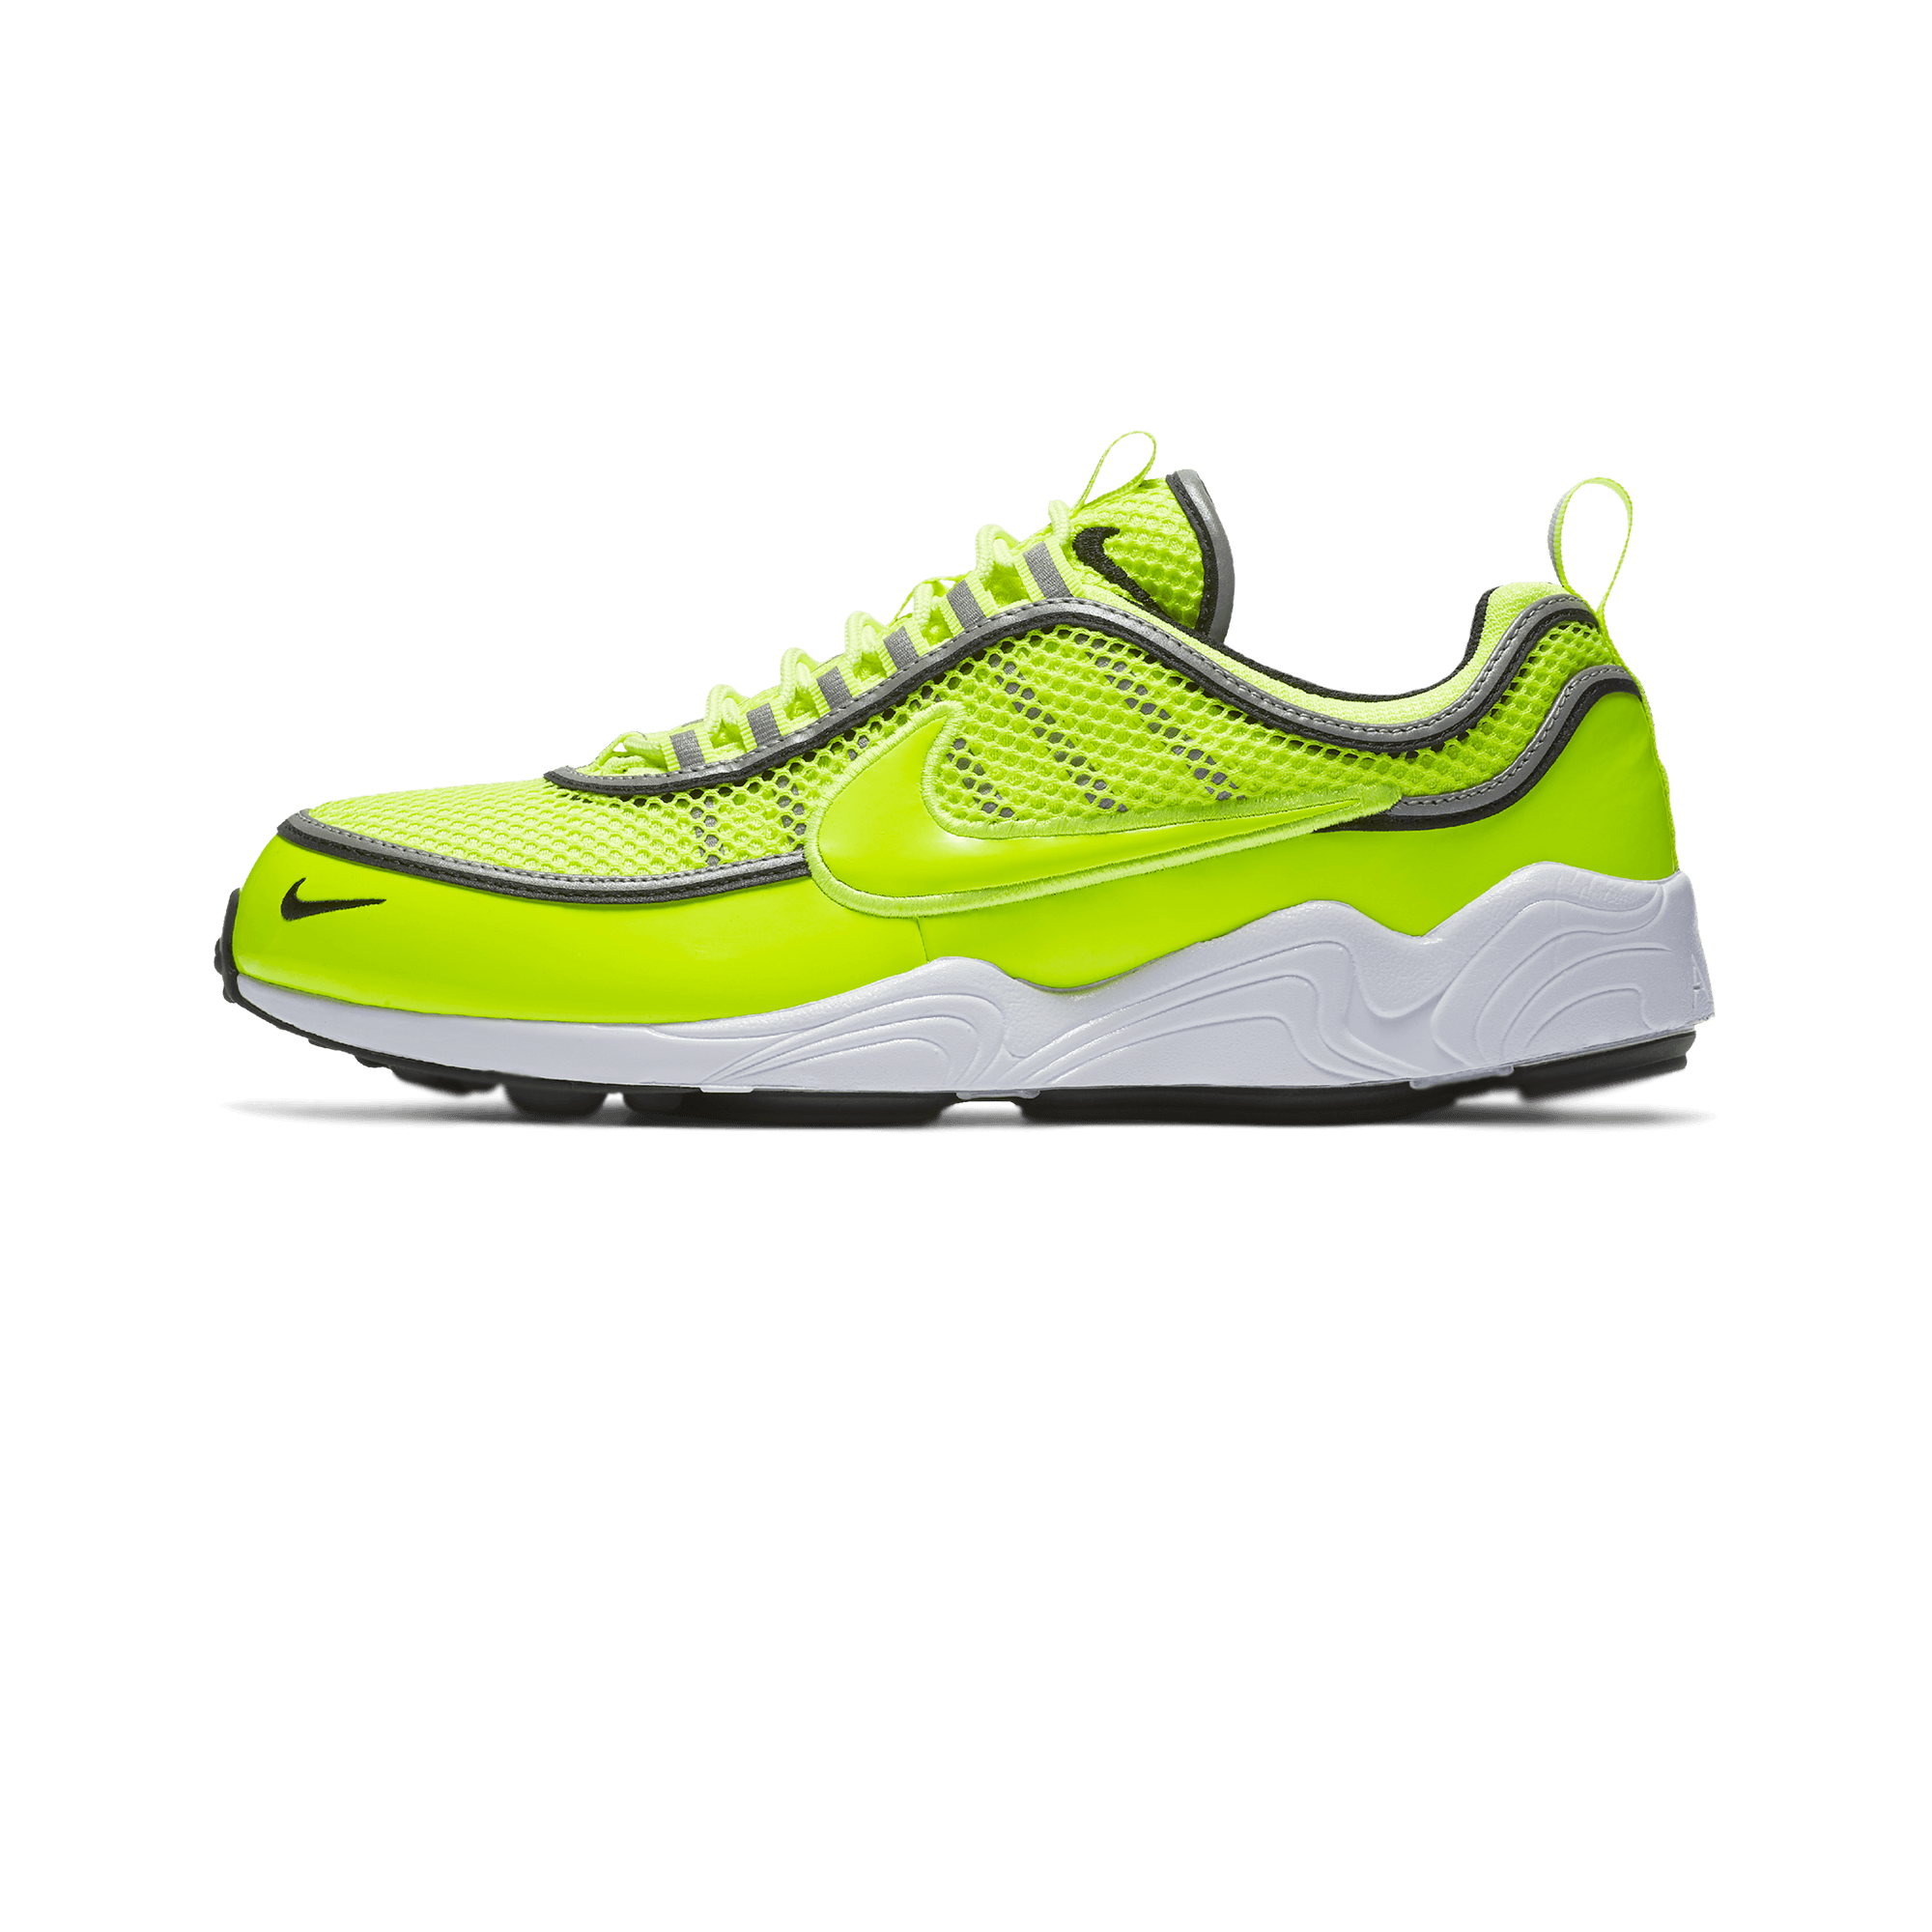 nouvelle collection 31c24 b110f Nike Air Zoom Spiridon '16 volt tint / white / black - Men |  Holypopstore.com